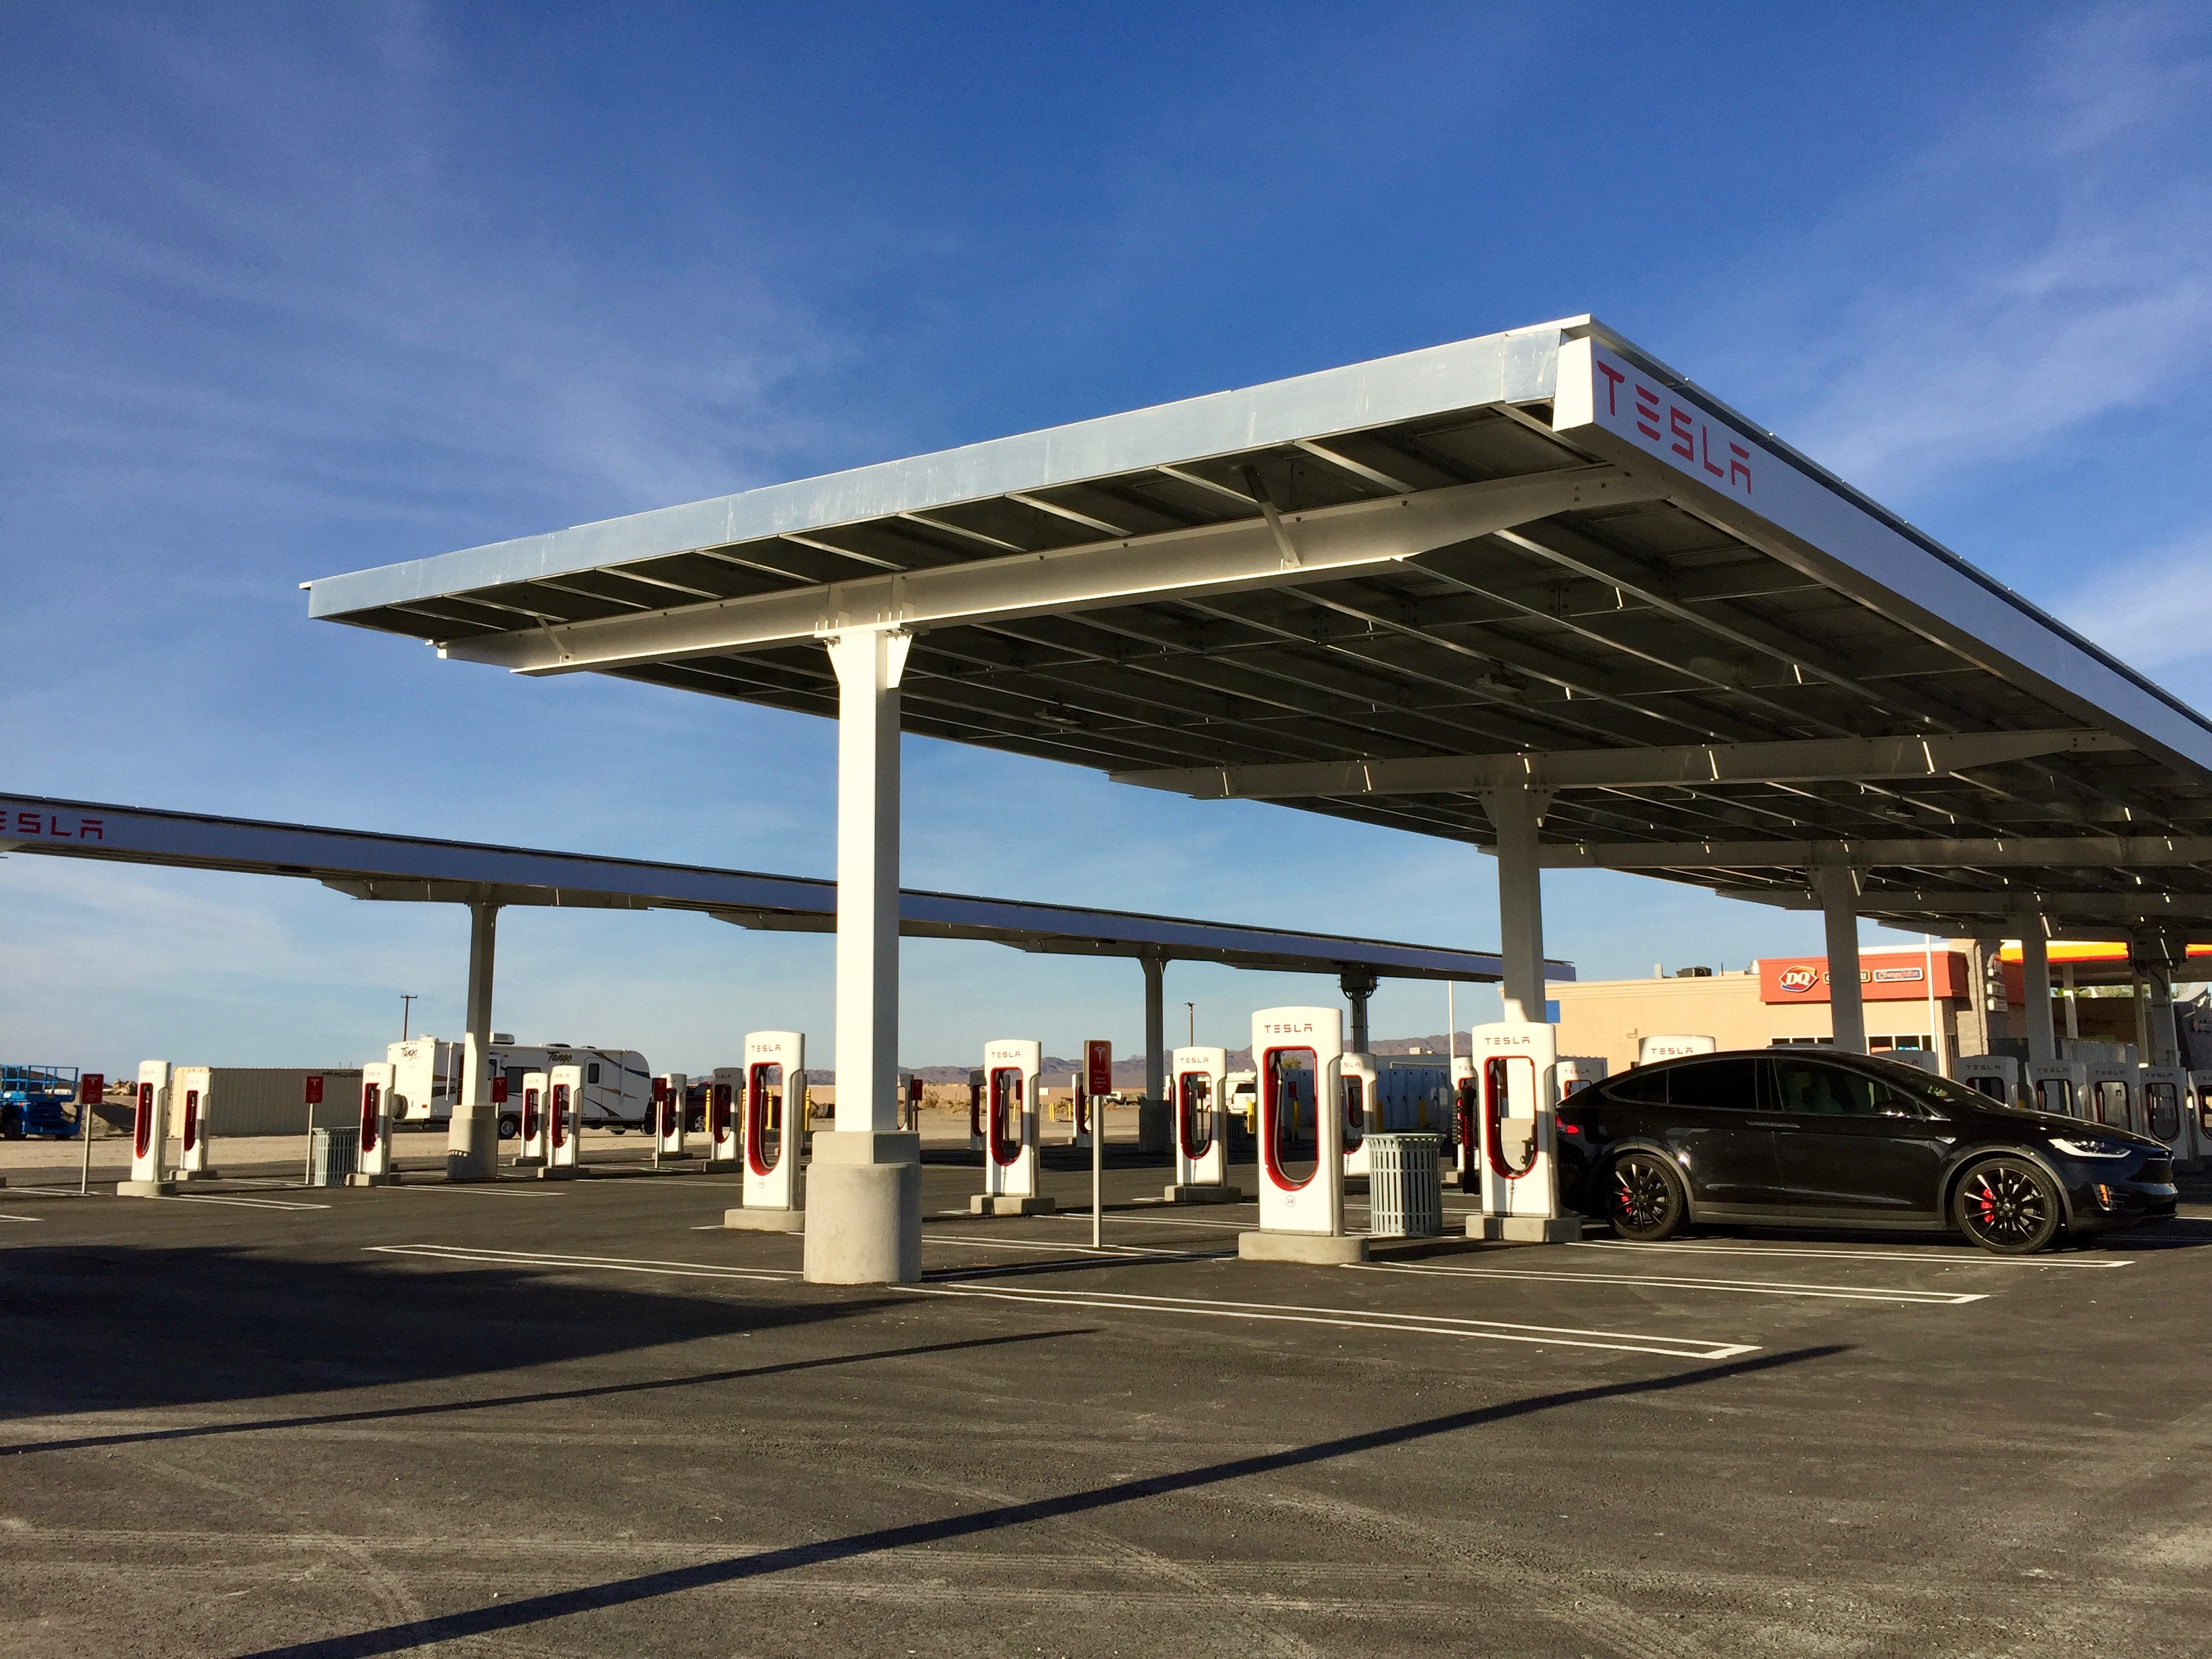 tesla-supercharger-baker-ca-40-stalls-model-x